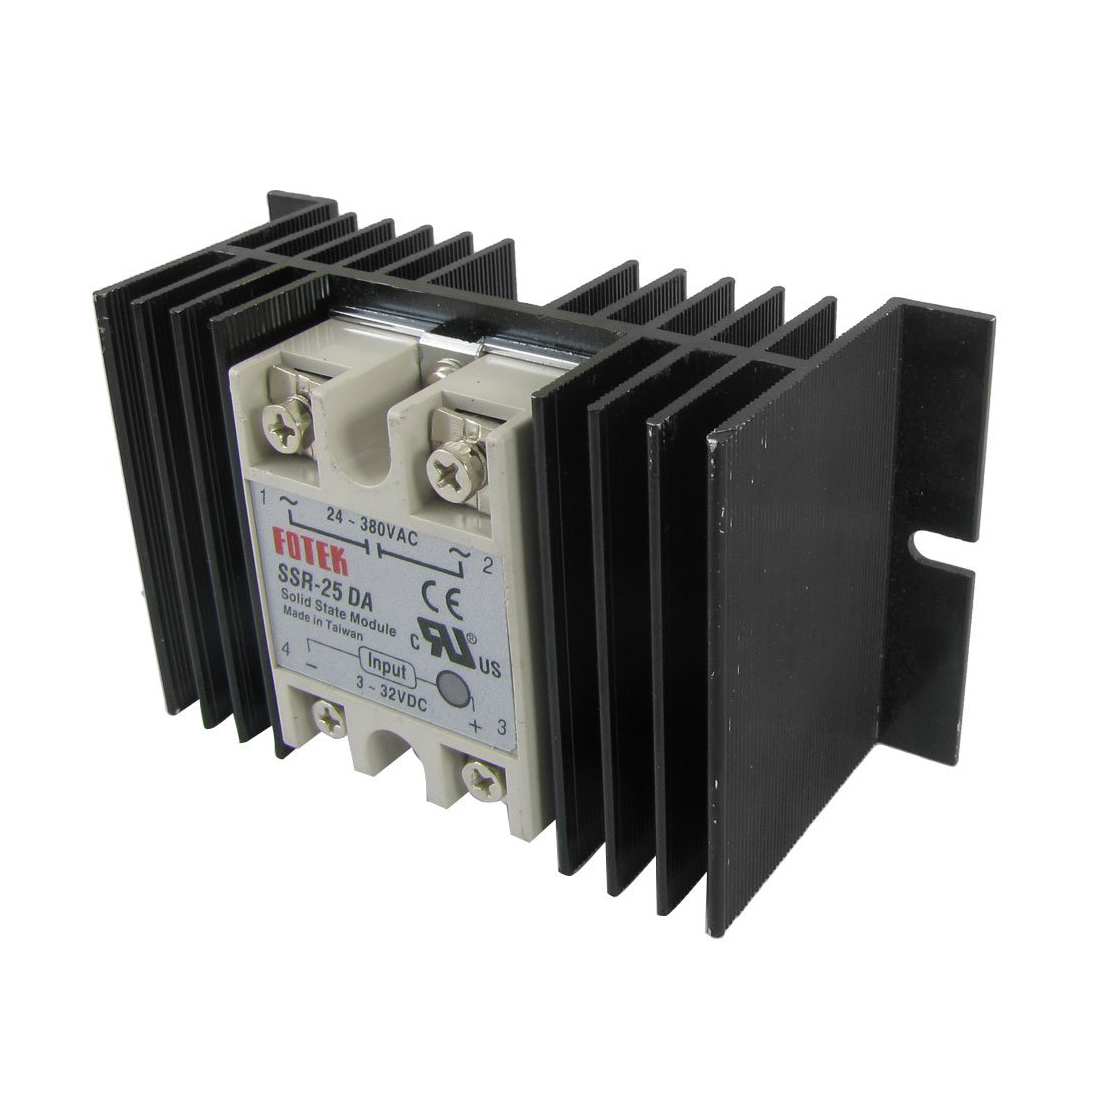 DC to AC Solid State Relay SSR-25DA 25A 3-32V 24-380V + Aluminum Heat Sink ступка с пестиком kuchenprofi d 11 см h 7 см мрамор черная 10 0243 10 11